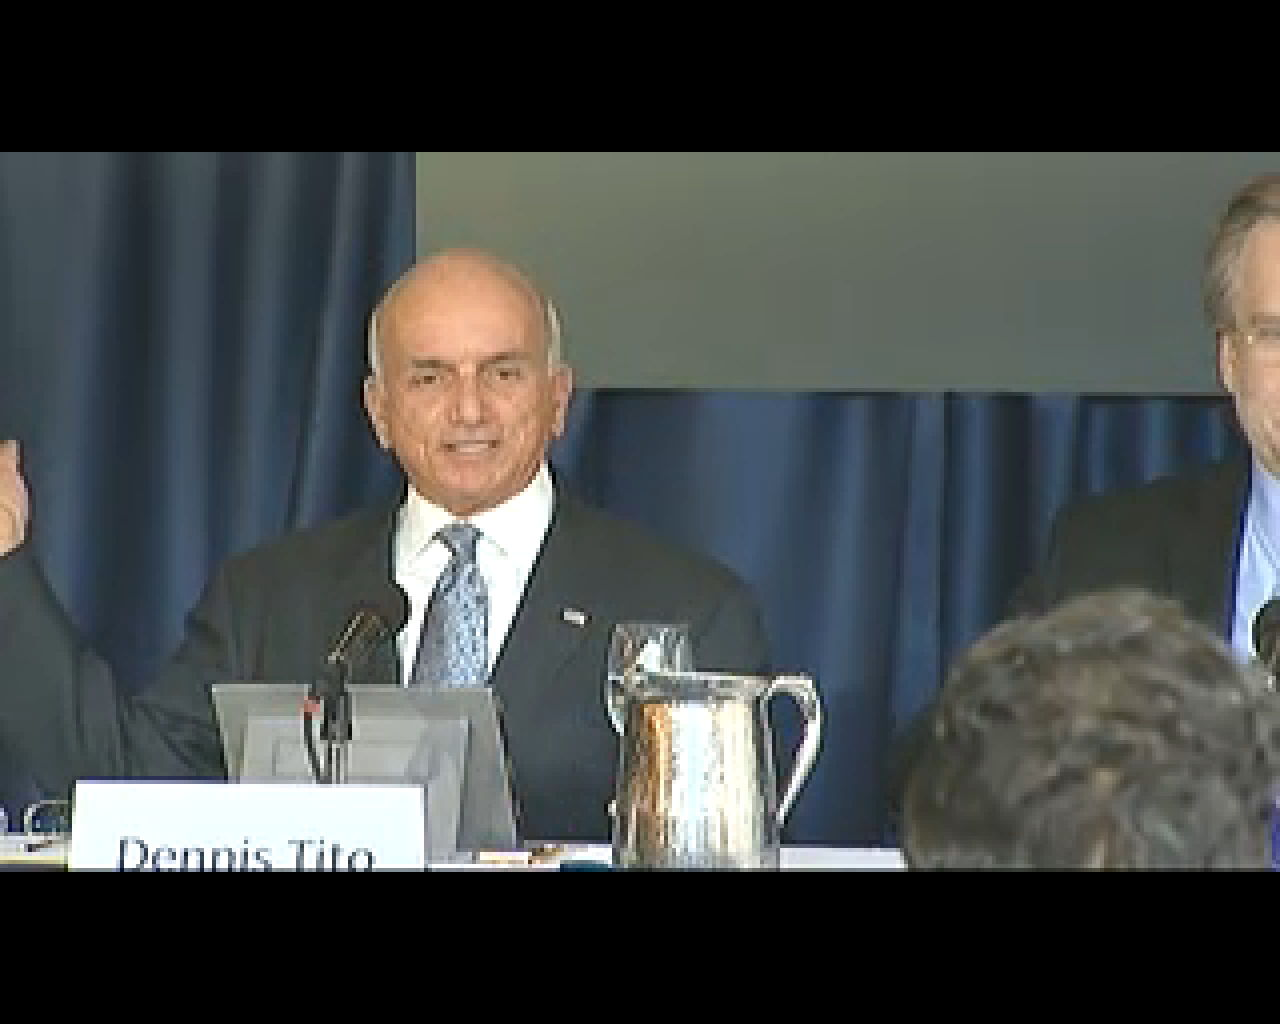 Dennis Tito Proposed Mars Flyby Mission